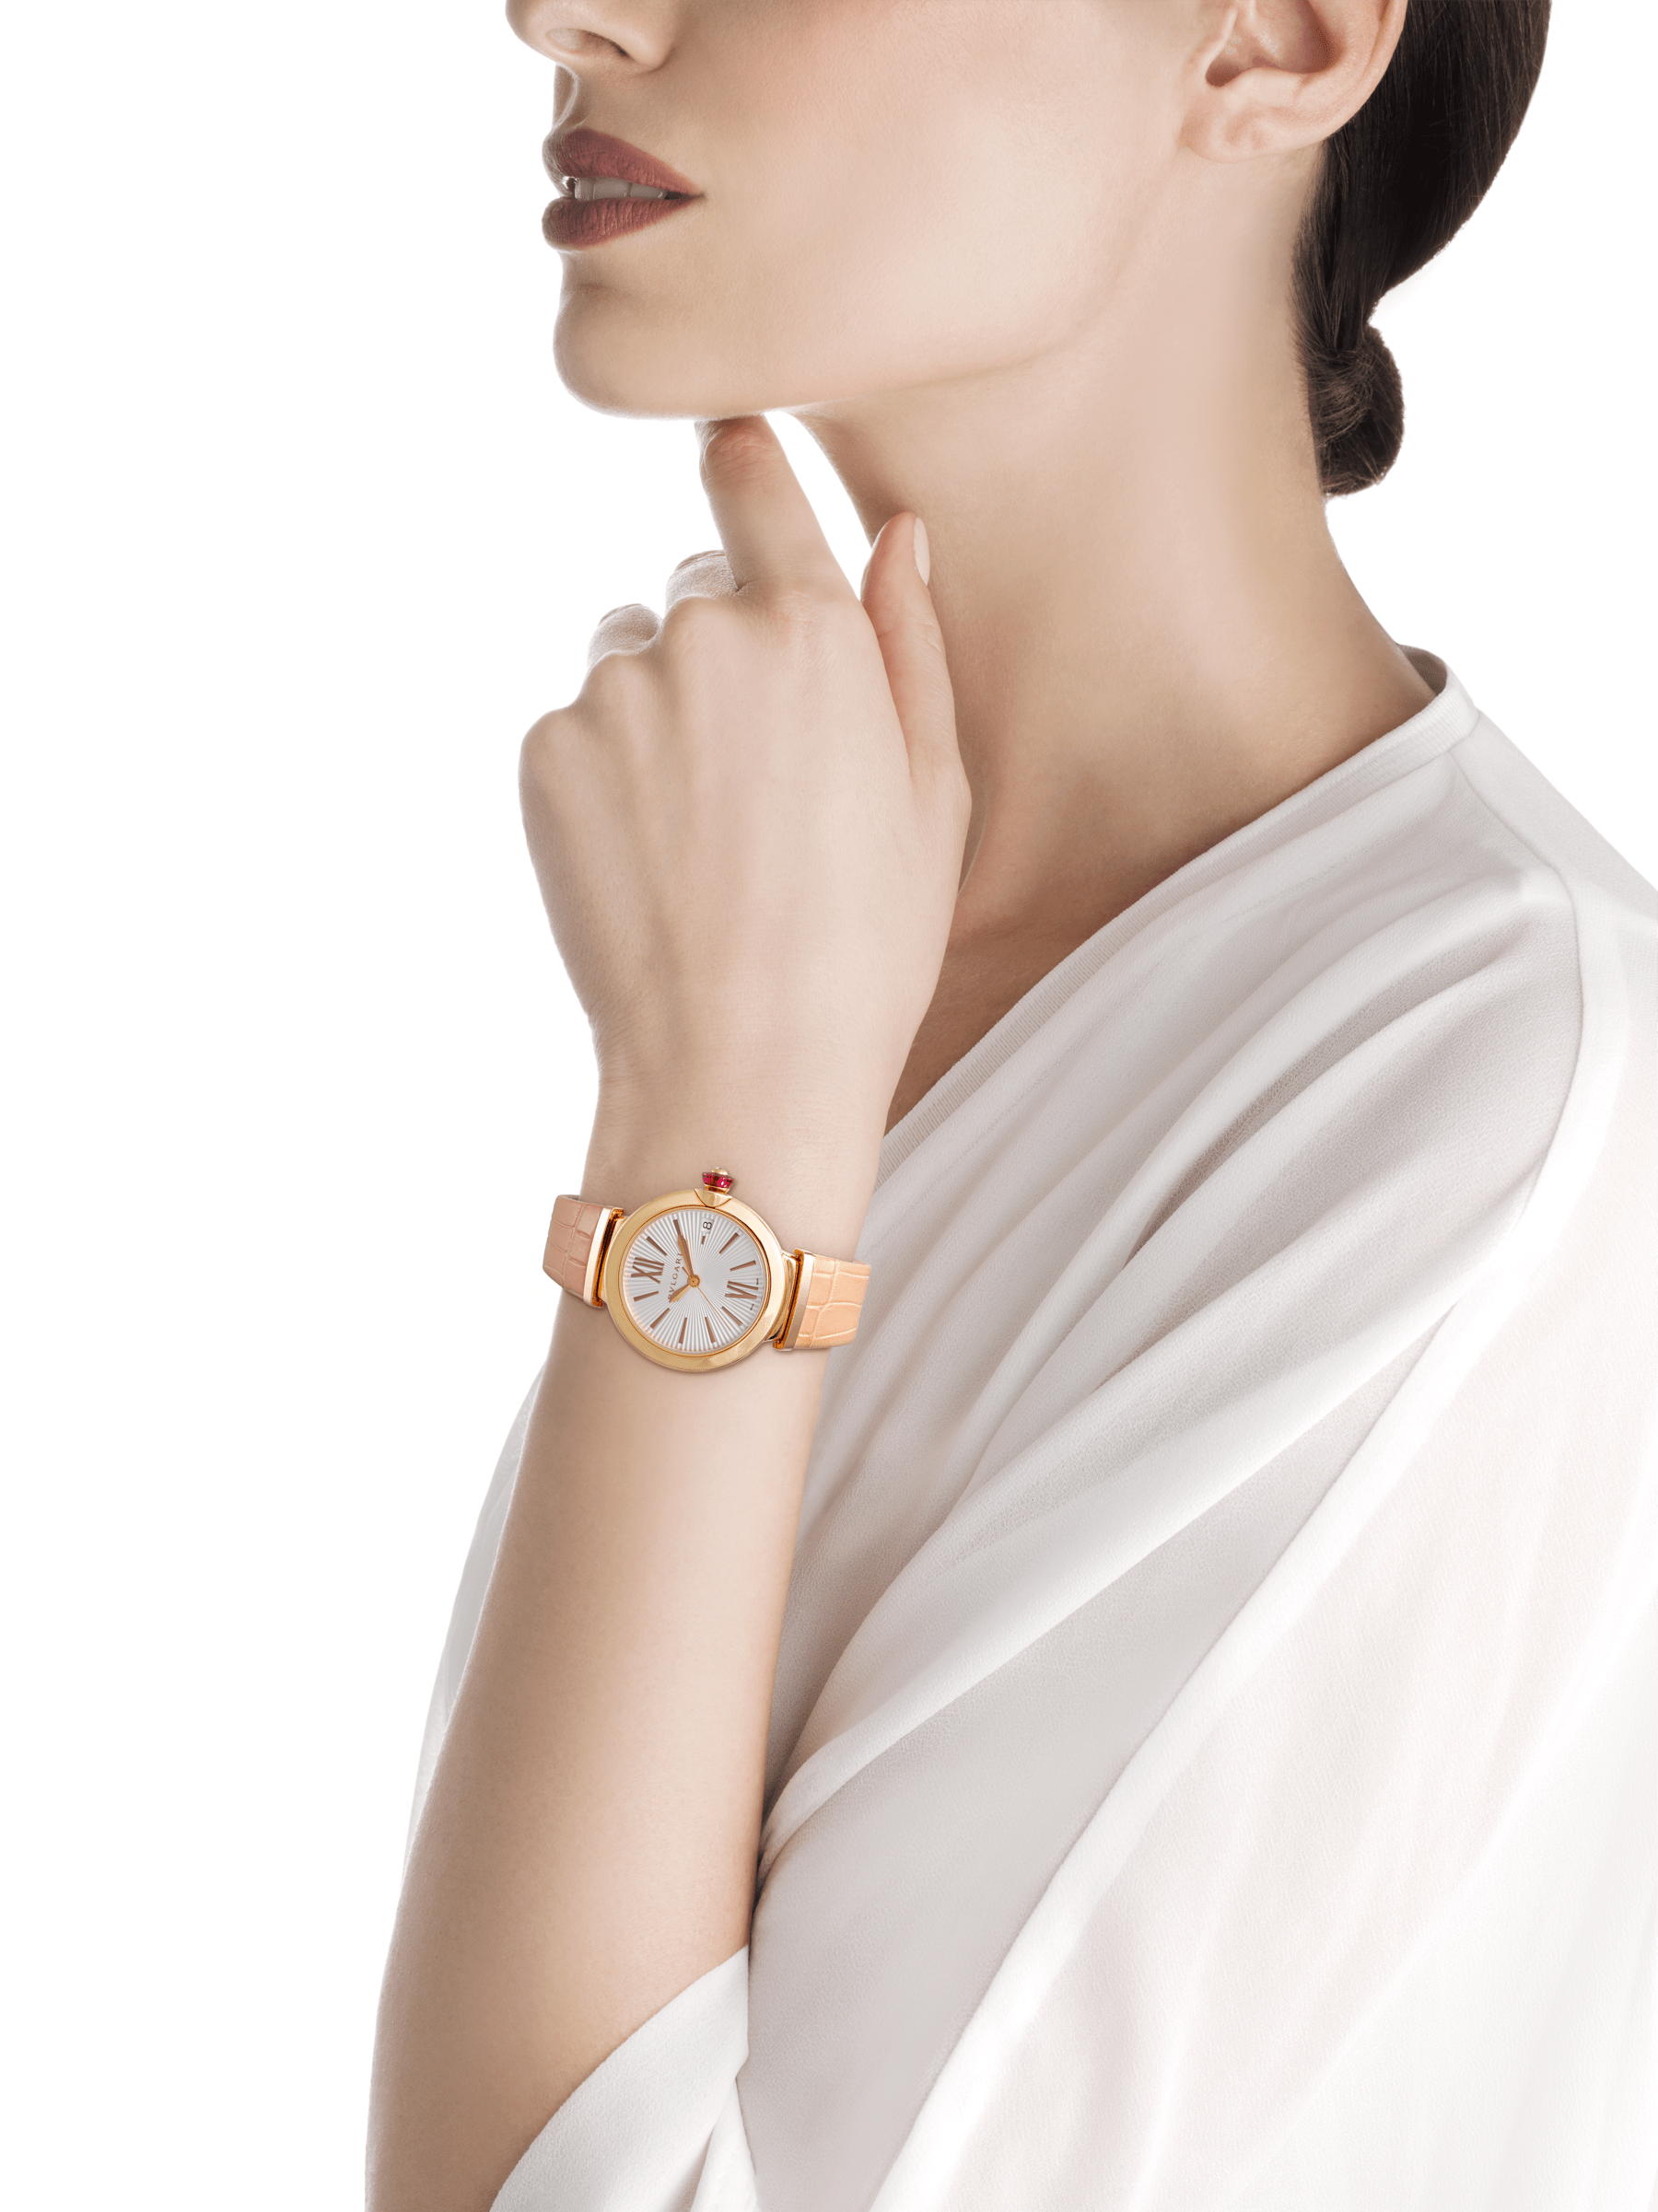 LVCEA watch with 18 kt rose gold case, silver opaline dial and powder pink alligator bracelet. 102328 image 2